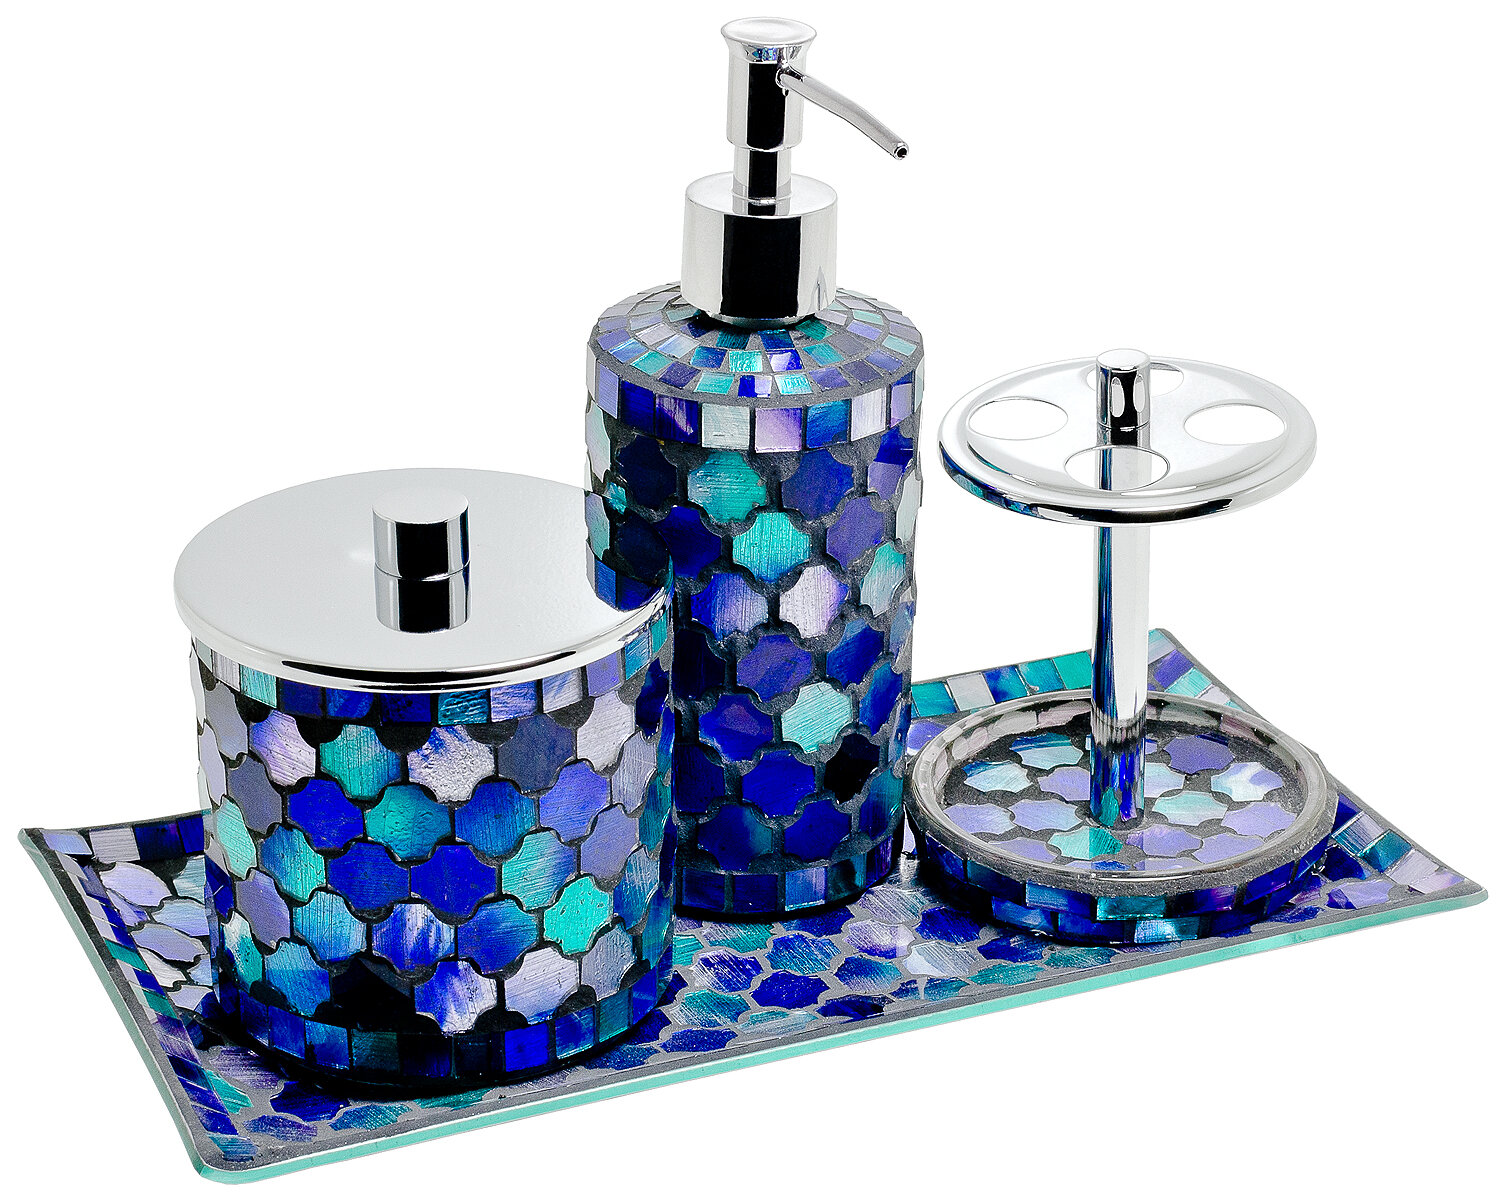 Home Essence Mosaic 4 Piece Bathroom Accessory Set & Reviews ... on purple jewelry accessories, purple kitchen accessories, purple flower pots, purple furniture accessories, purple room accessories, purple shower curtains and accessories, purple home accessories, purple car accessories, purple wedding accessories, purple bedroom, purple beds, purple desk accessories, purple wall accessories,